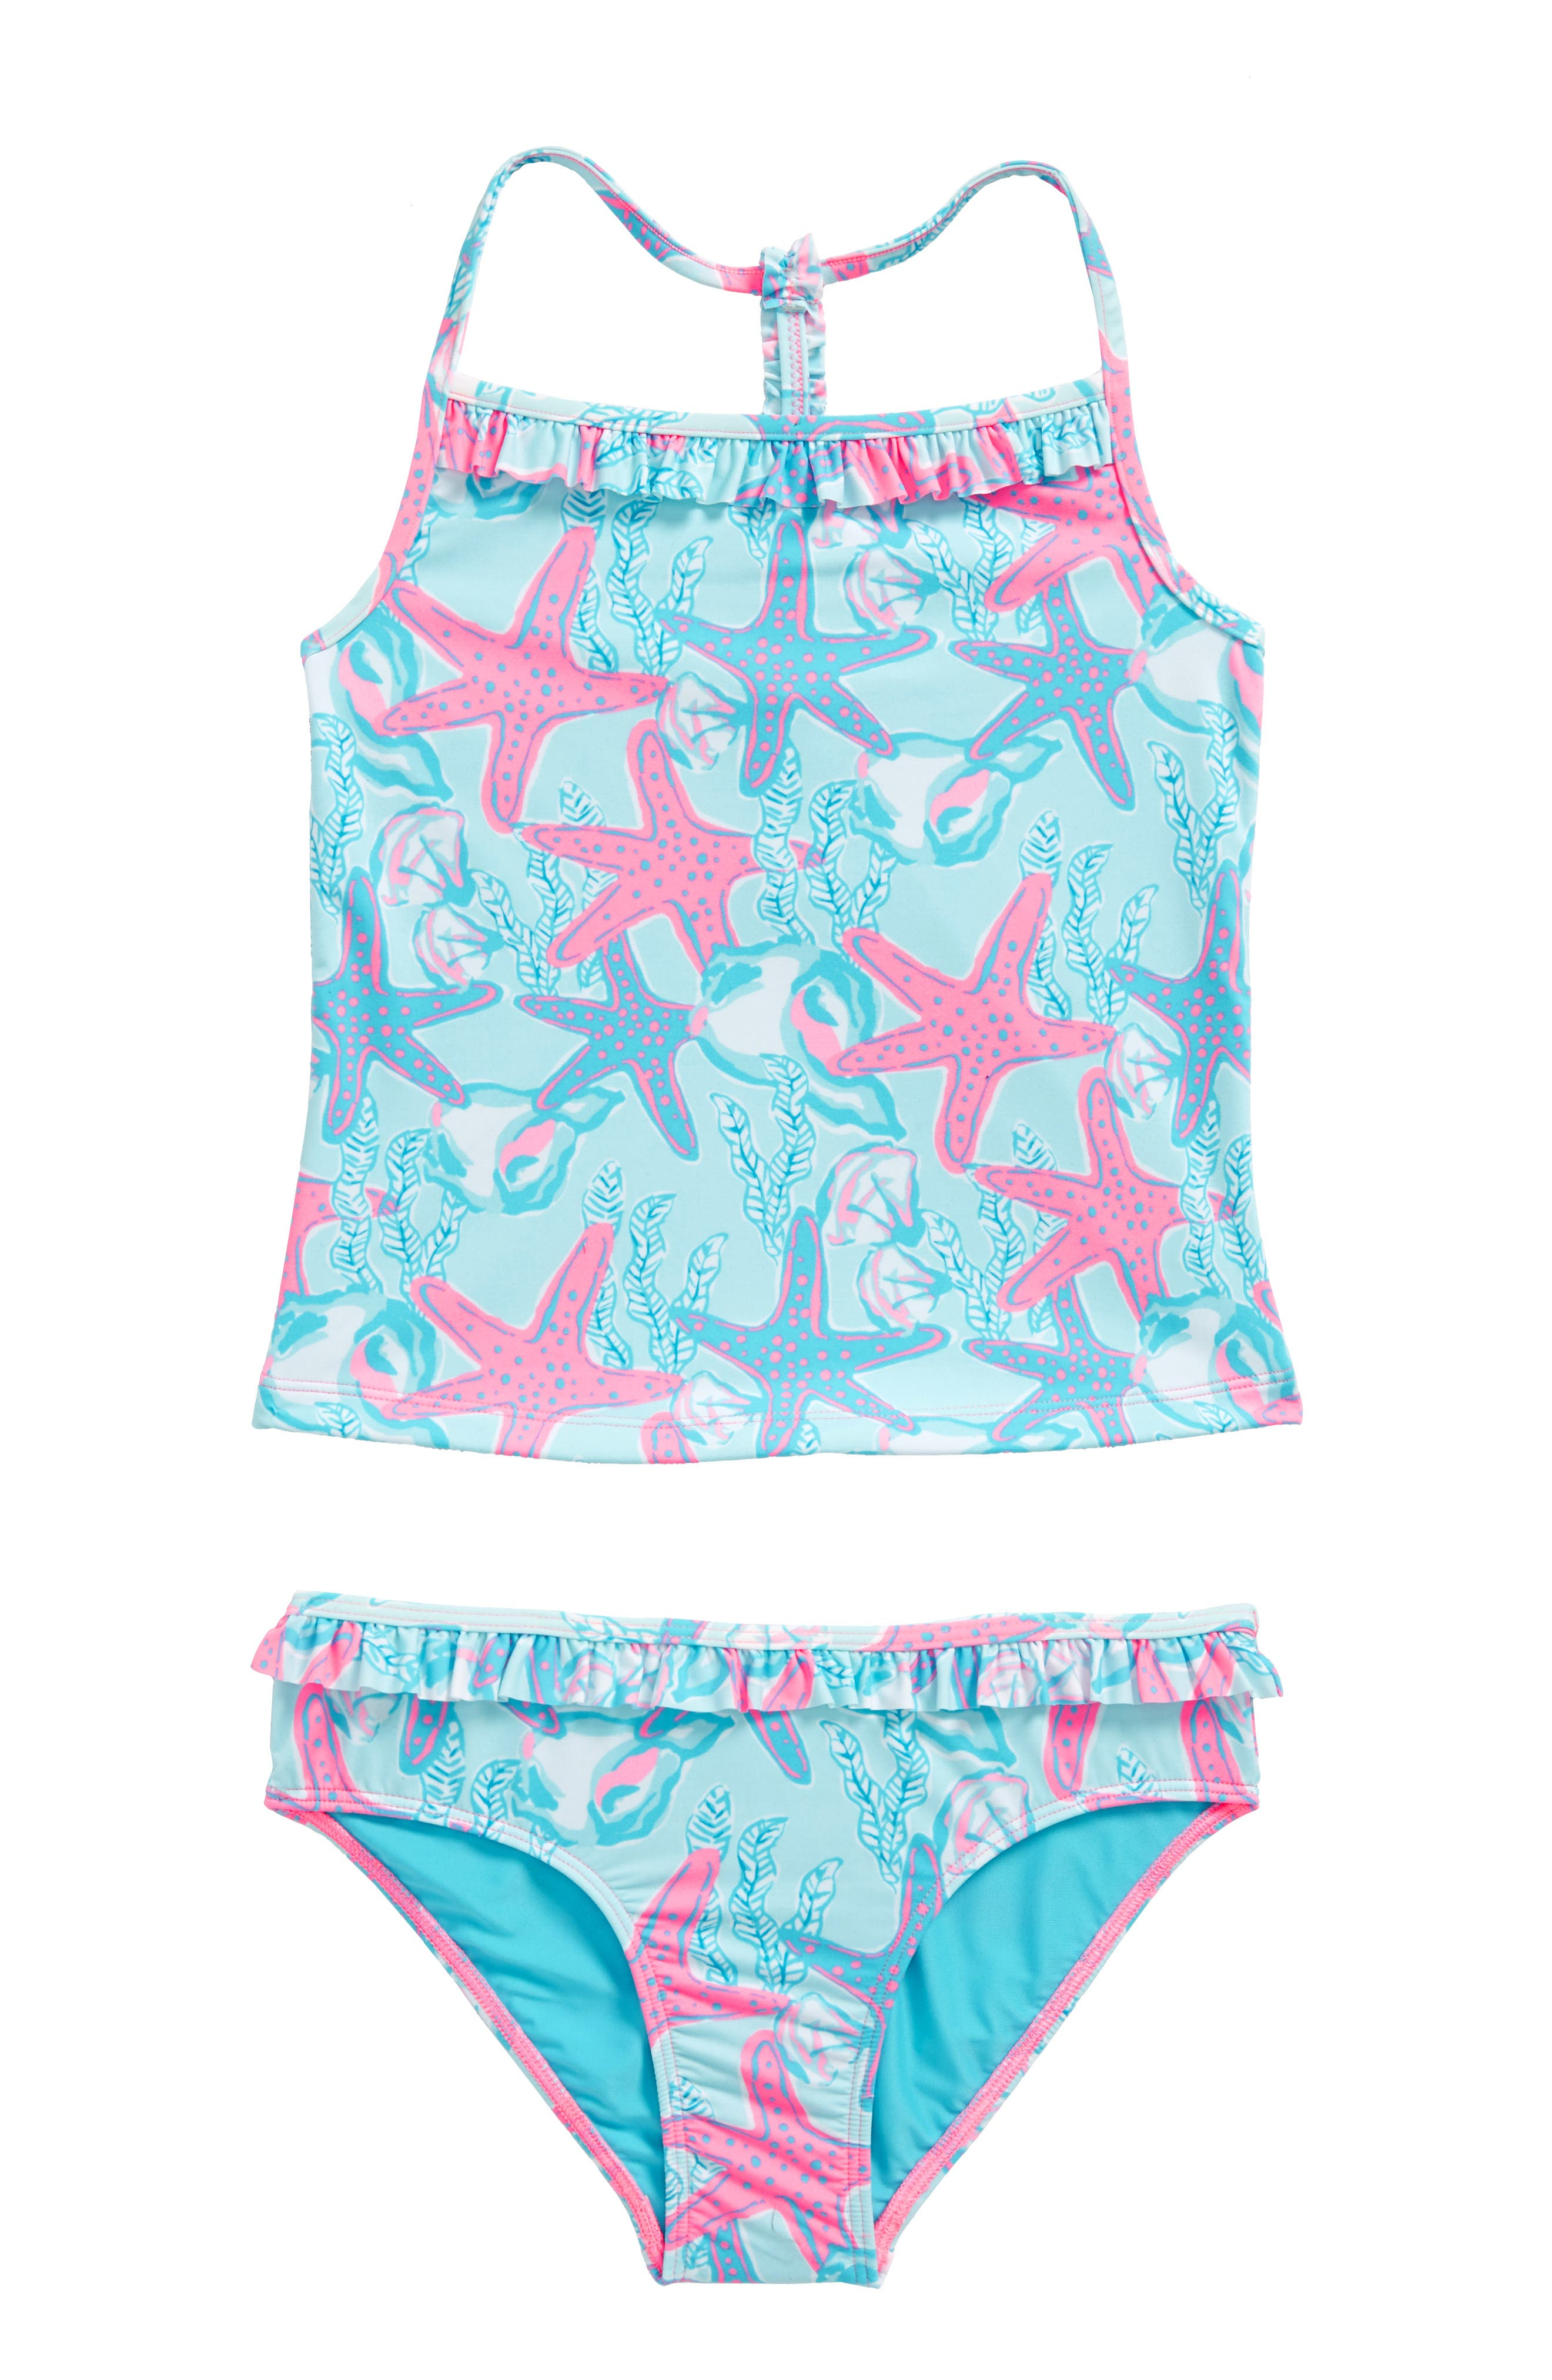 Starfish and Conch Ruffle Two-Piece Swimsuit,                             Main thumbnail 1, color,                             470